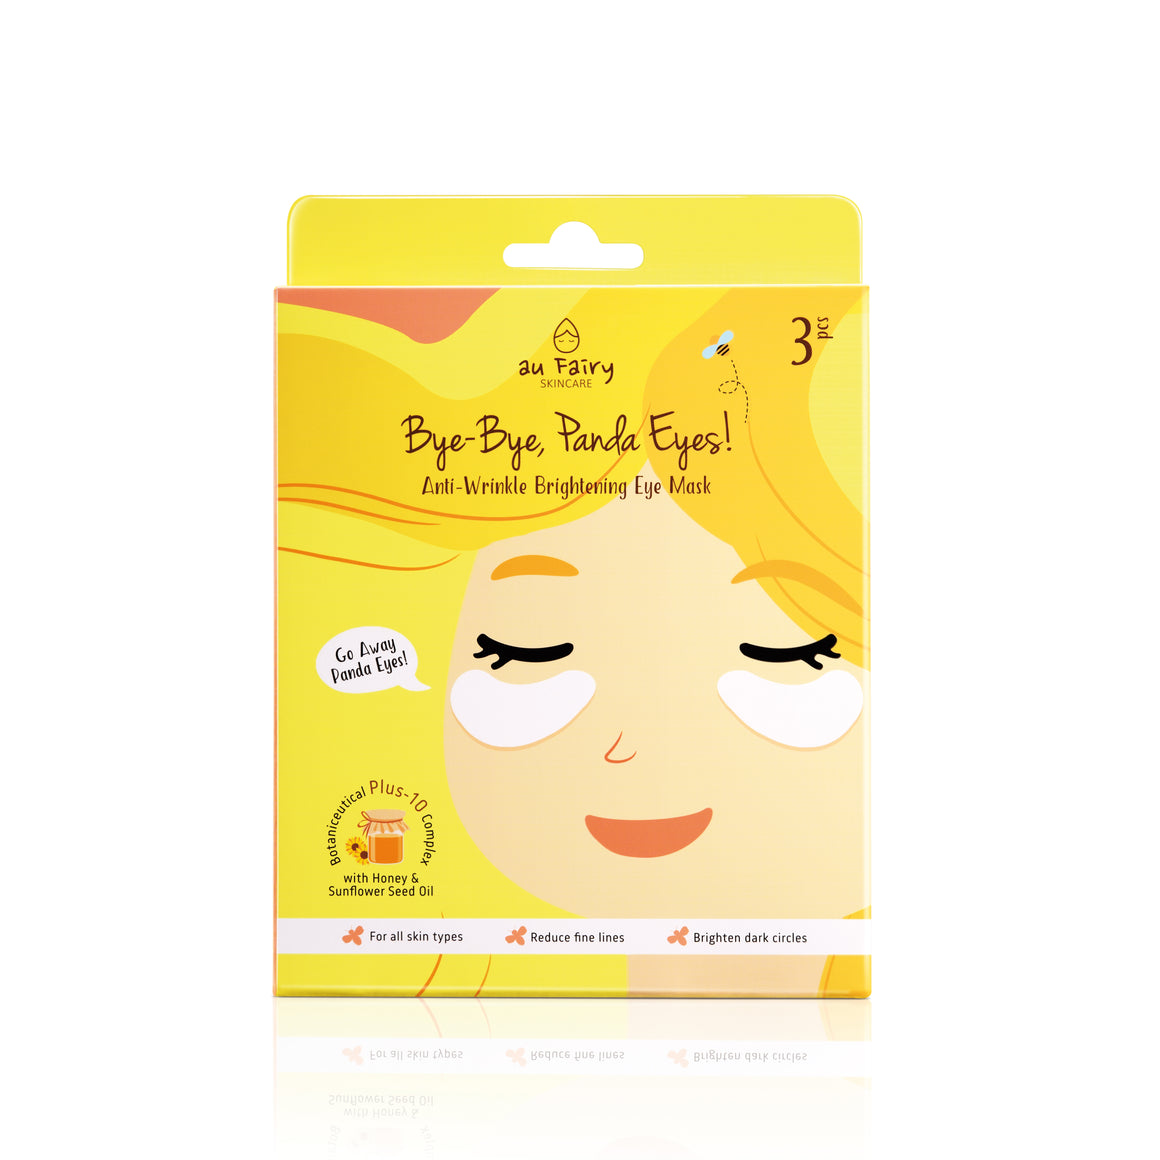 AUFAIRY Bye-bye, Panda Eyes! Anti-Wrinkle Brightening Eye Mask - Yoskin